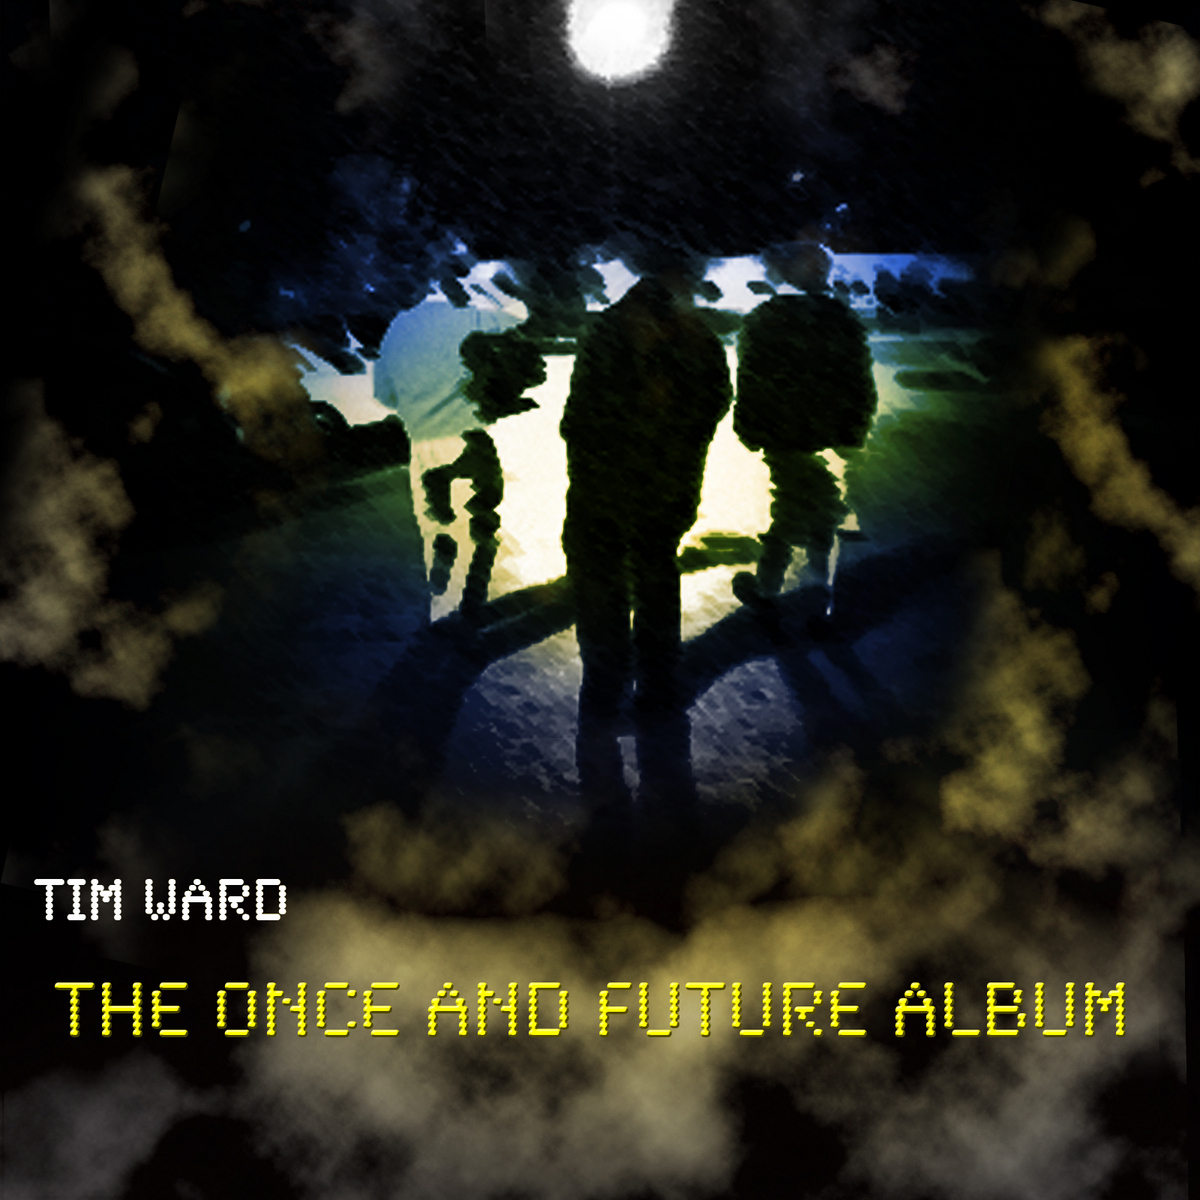 The Once and Future Album